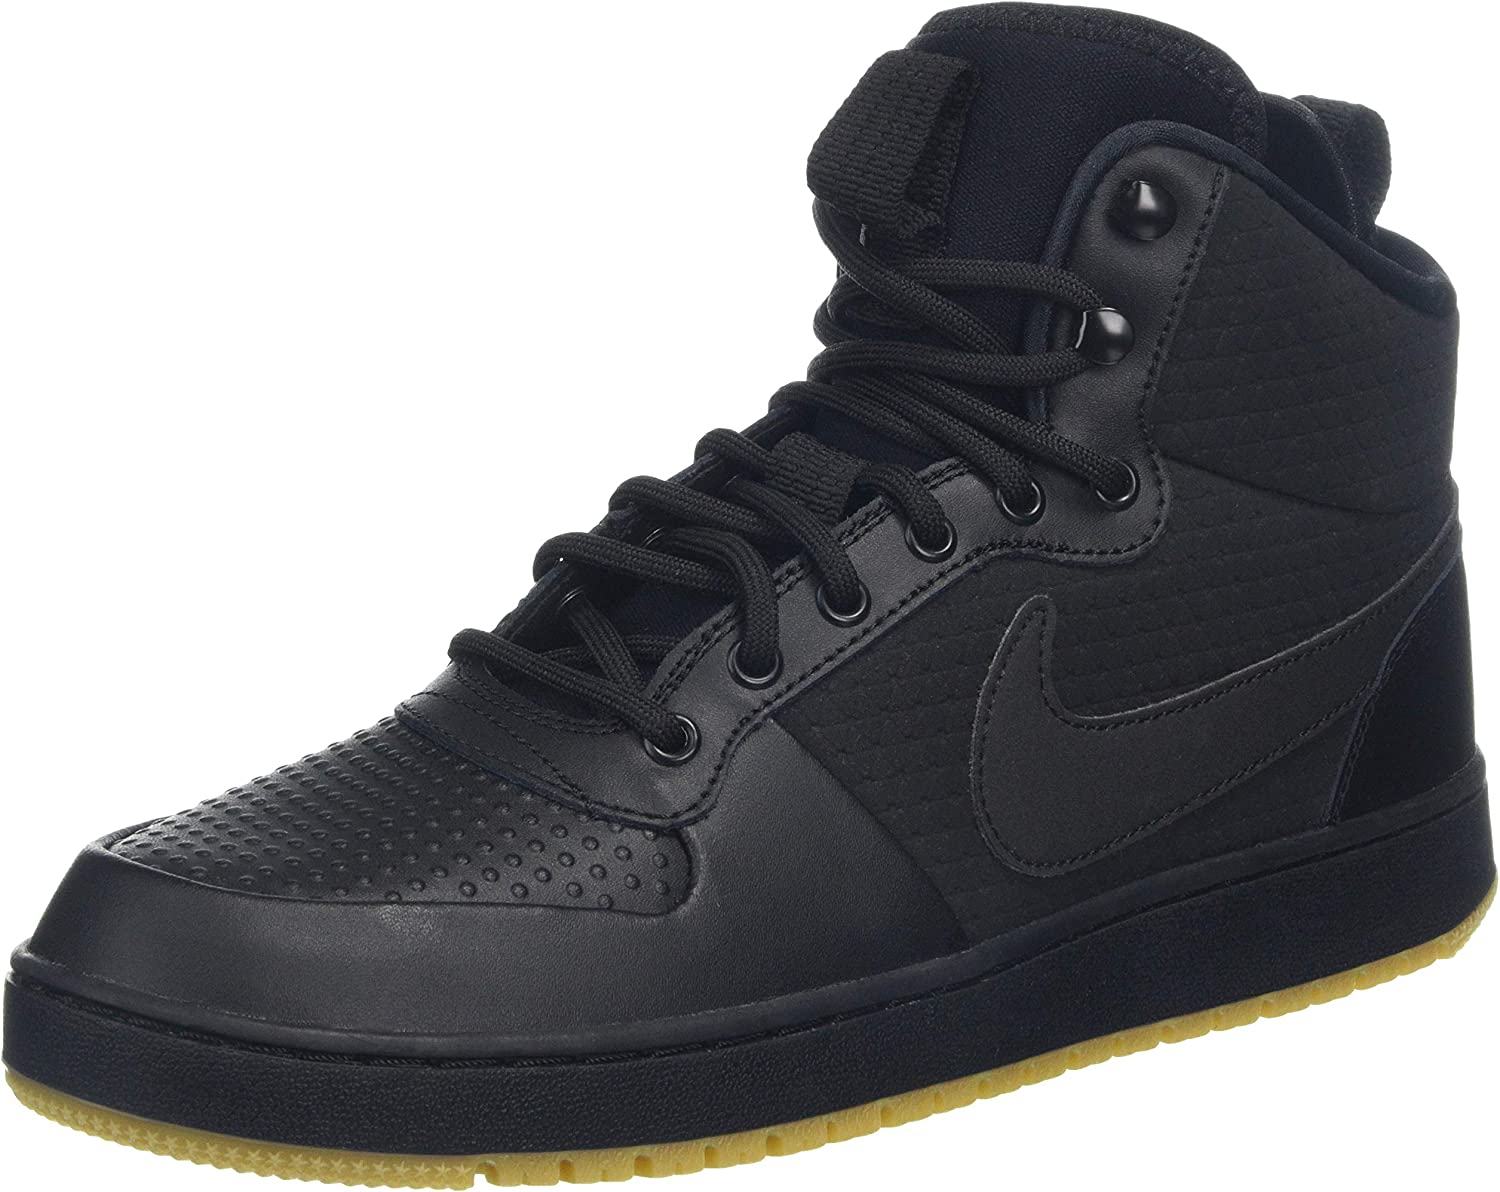 Nike Men's Ebernon Mid Winter shoes